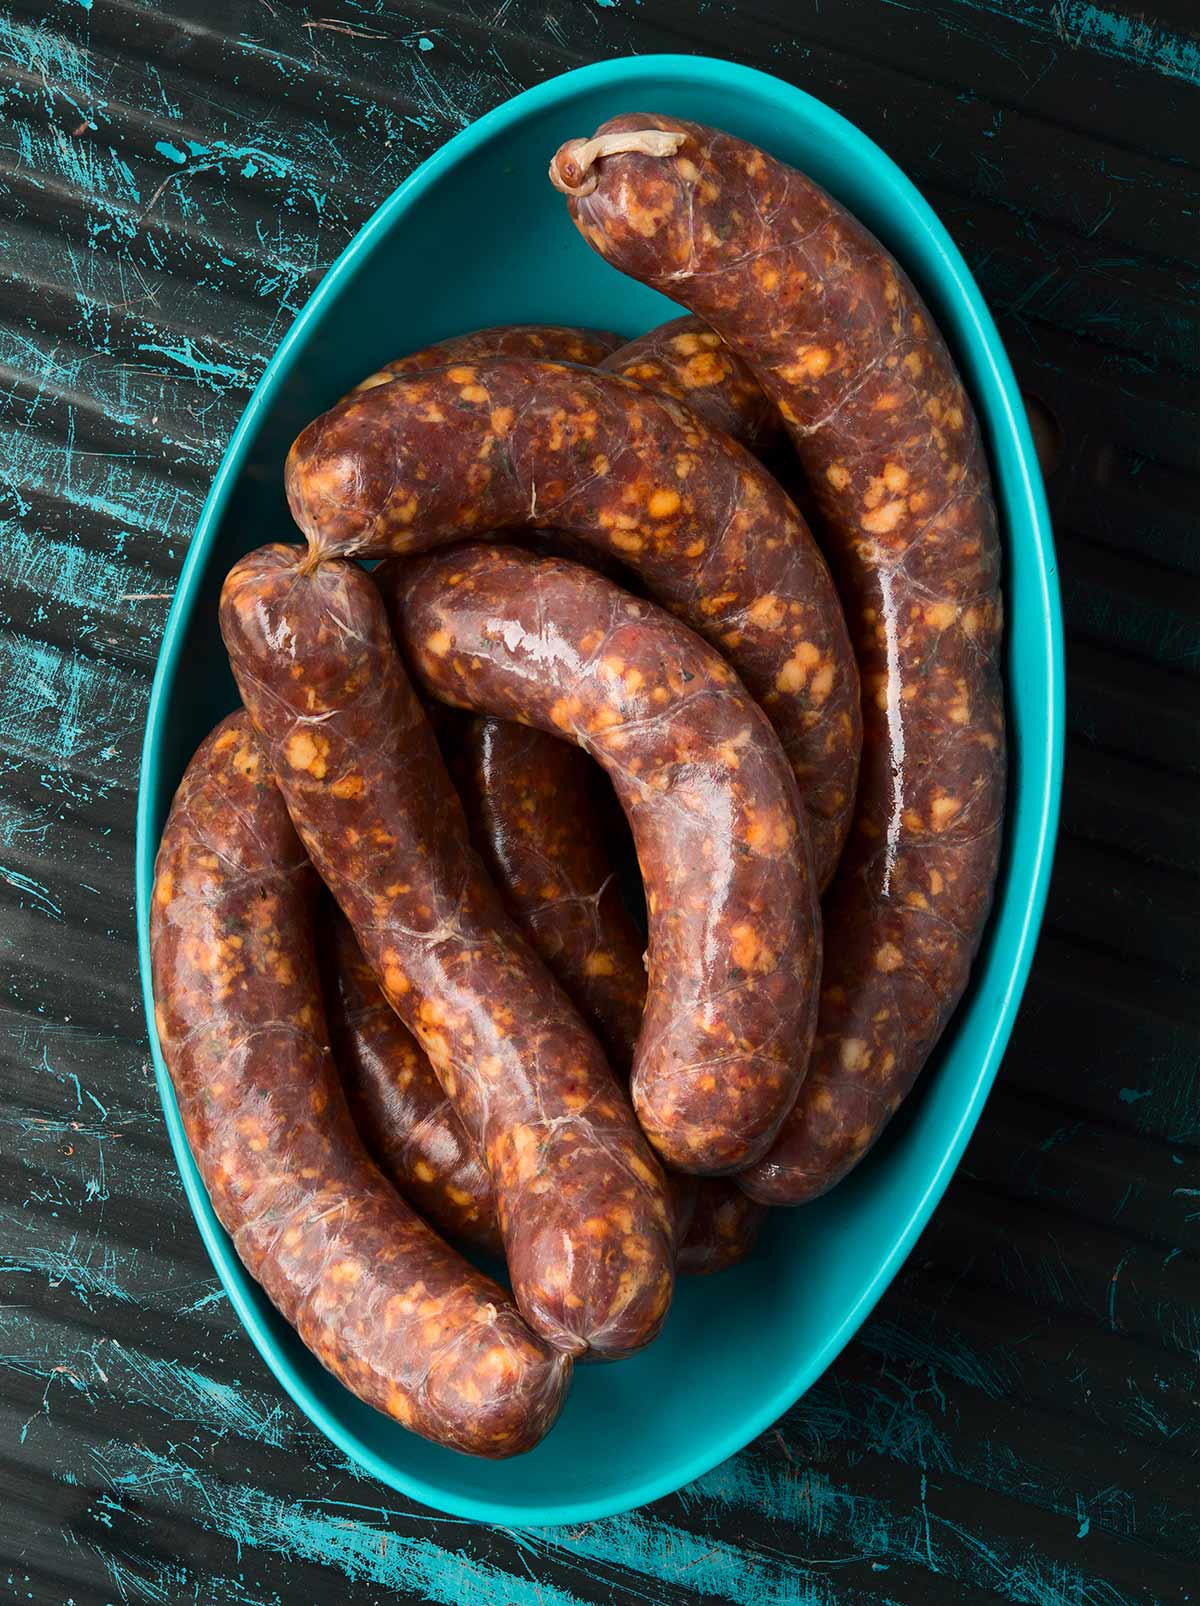 Links of spicy Italian sausage in a bowl